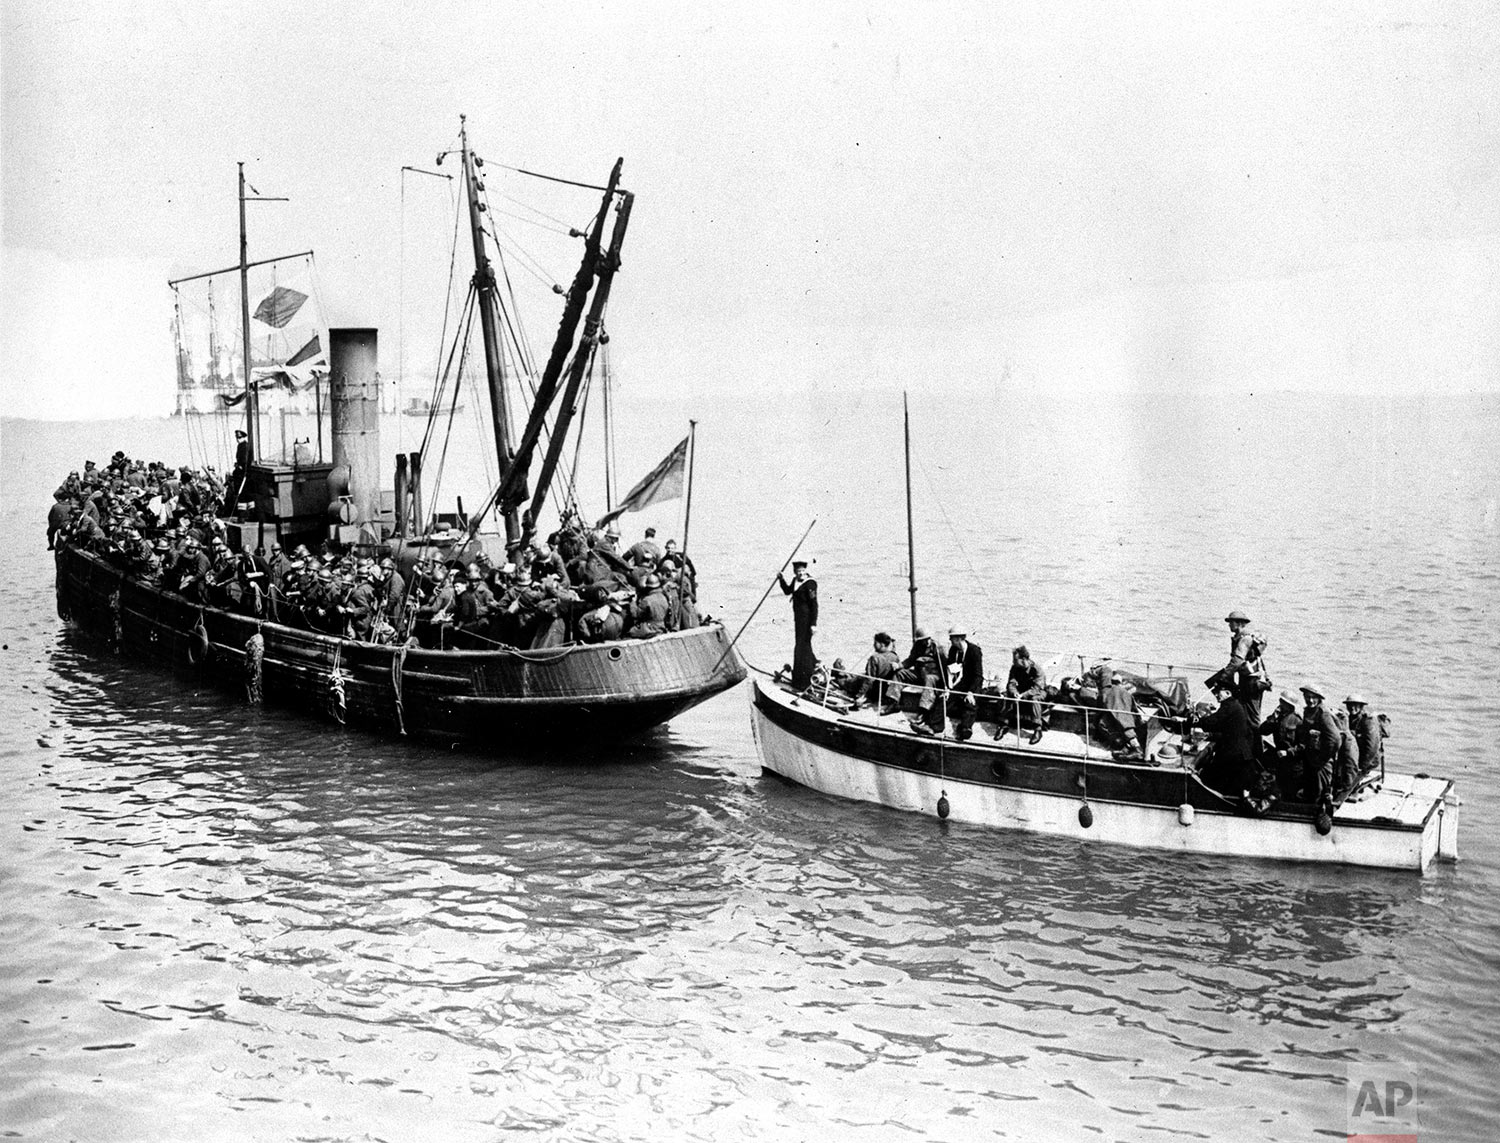 Two of the many small boats which helped to bring the Allied troops in the emergency evacuation across the English Channel from Dunkirk, France, are shown on June 4, 1940 in World War II. (AP Photo)